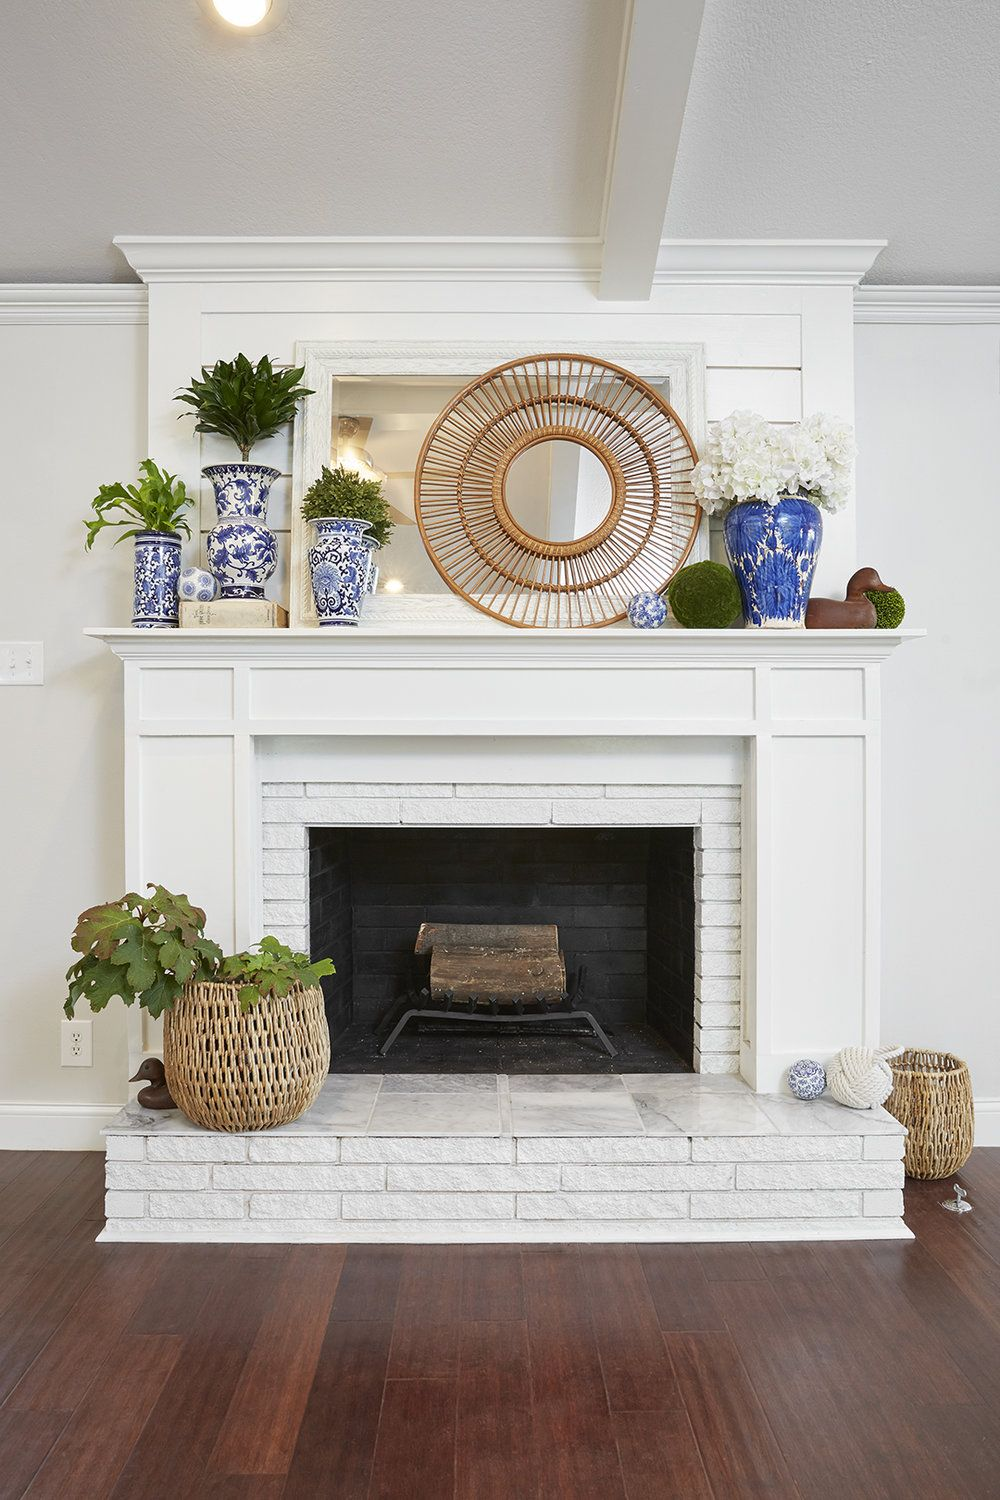 Painting An Old Fireplace How To Paint A Brick Fireplace And The Best Paint To Use